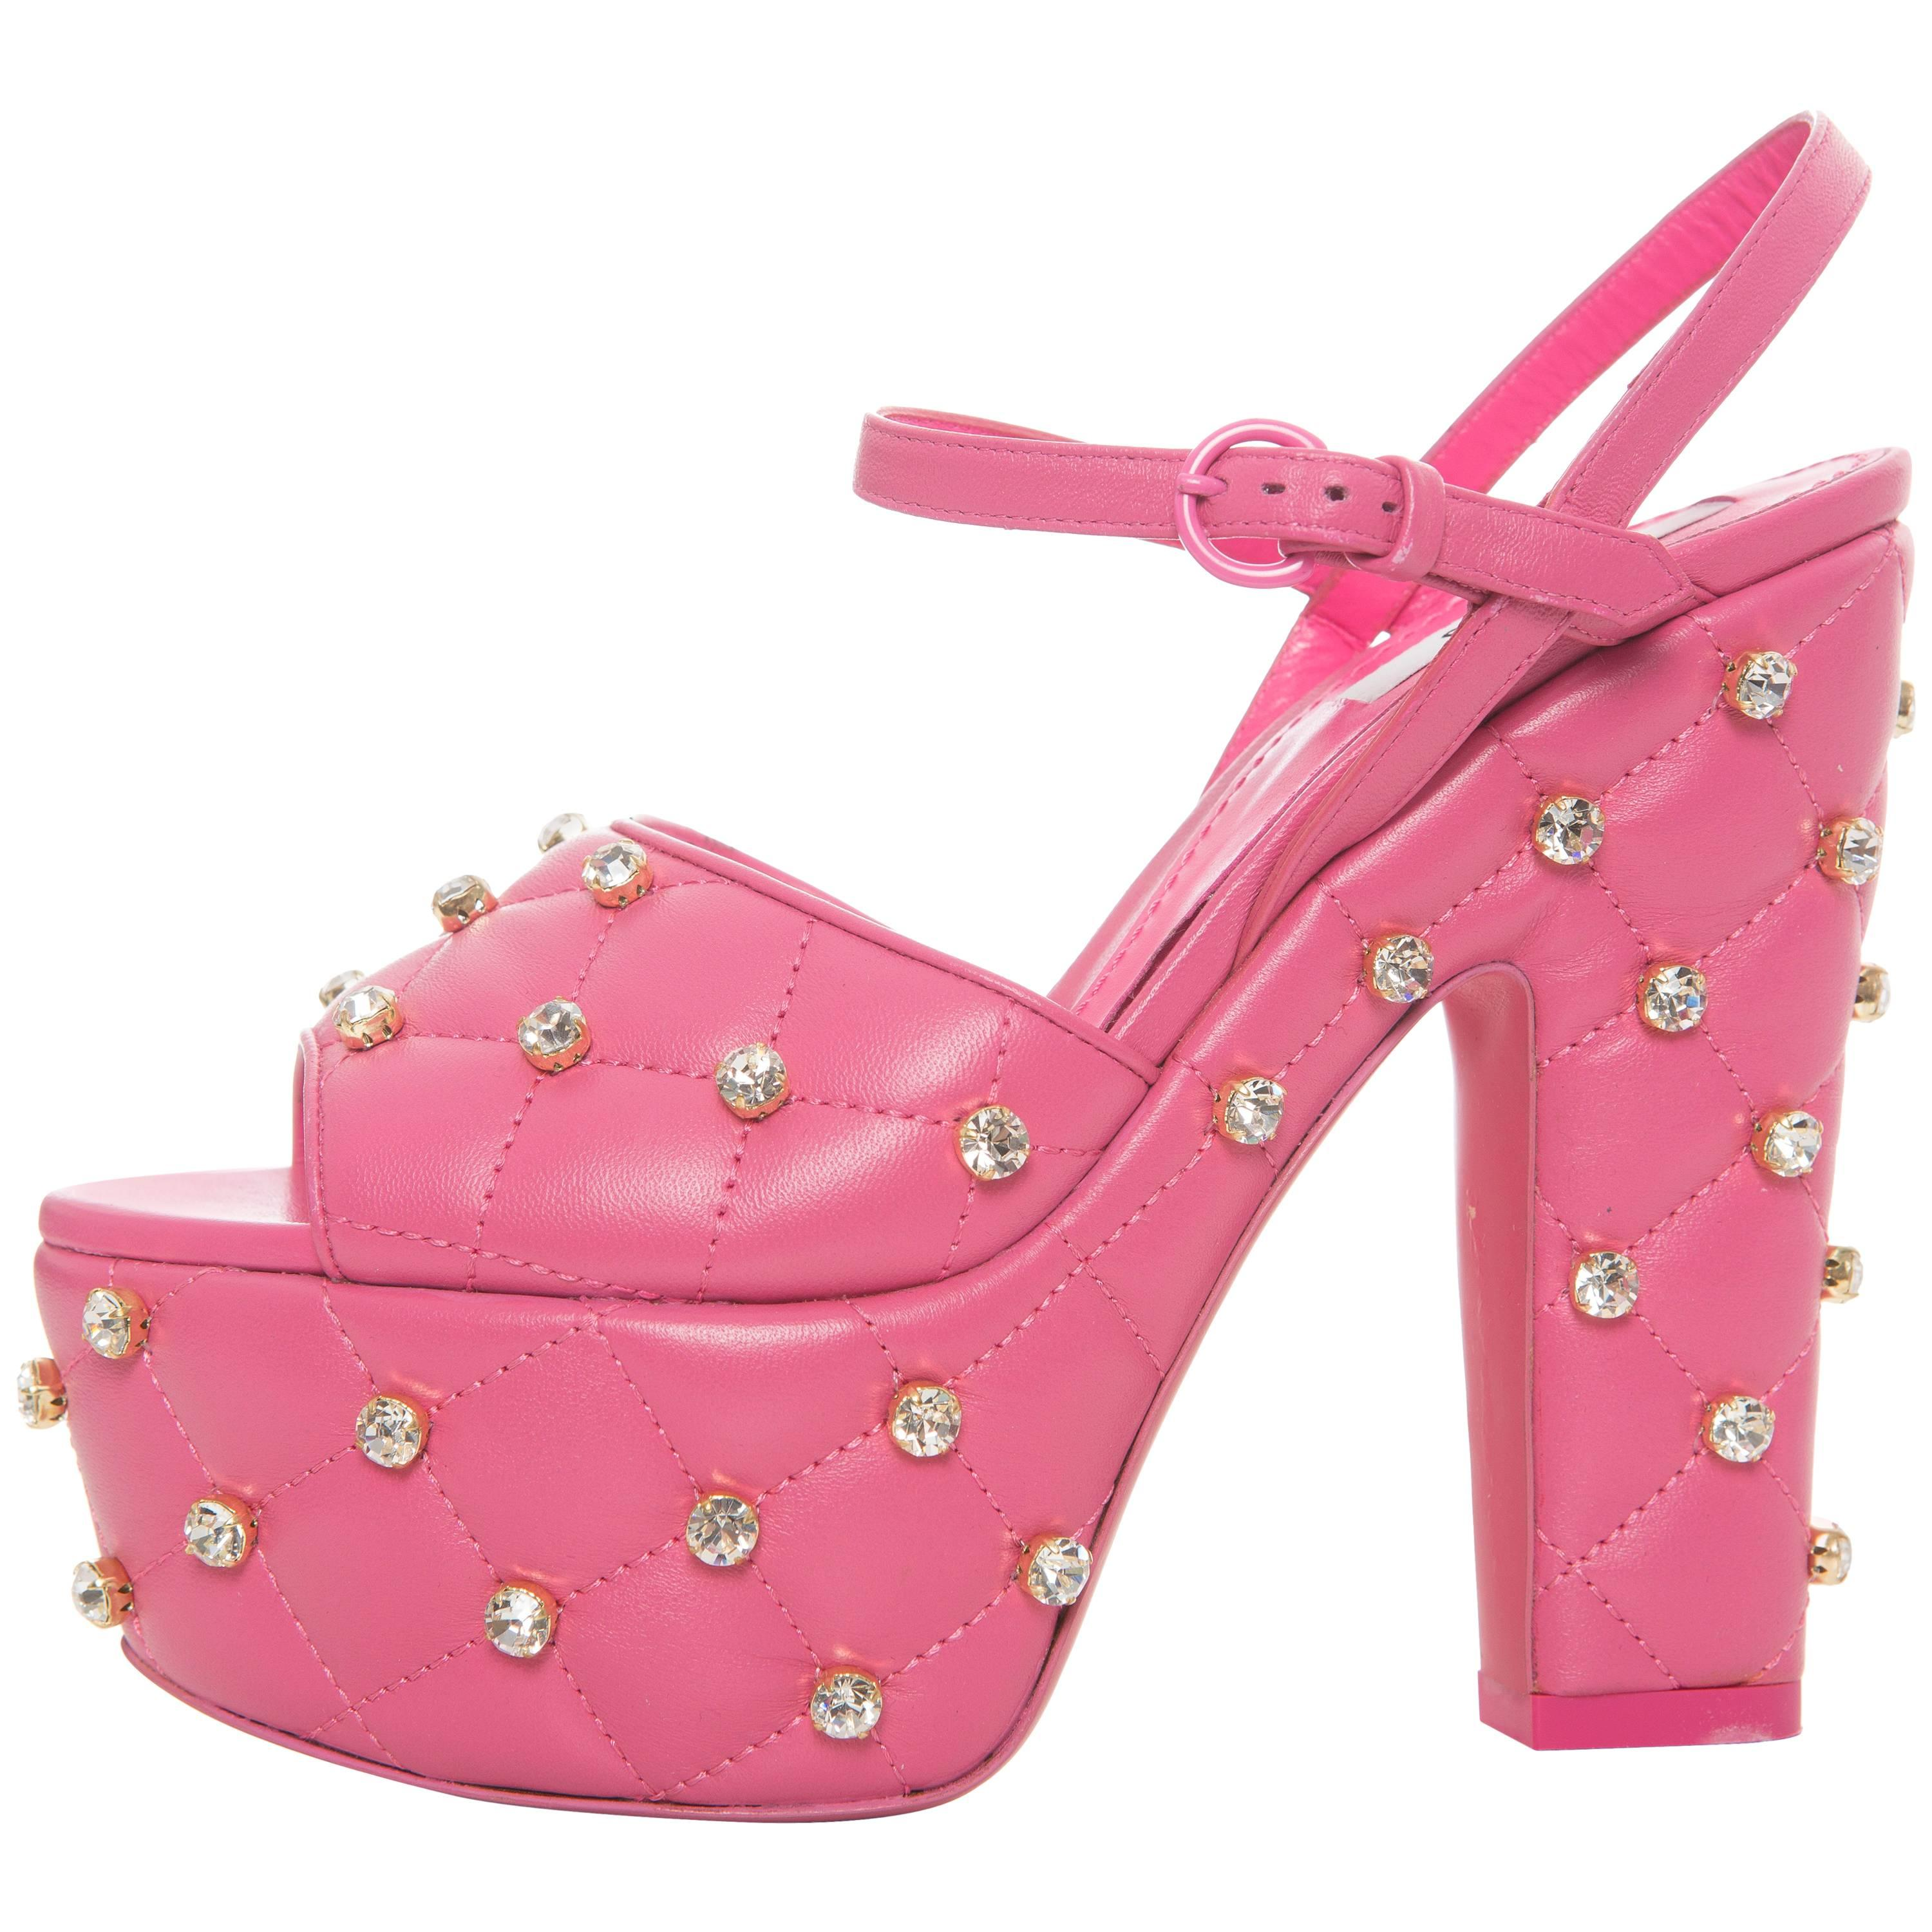 944d2989ad4 Moschino Couture Pink Quilted Leather Crystal Platform Sandals ...